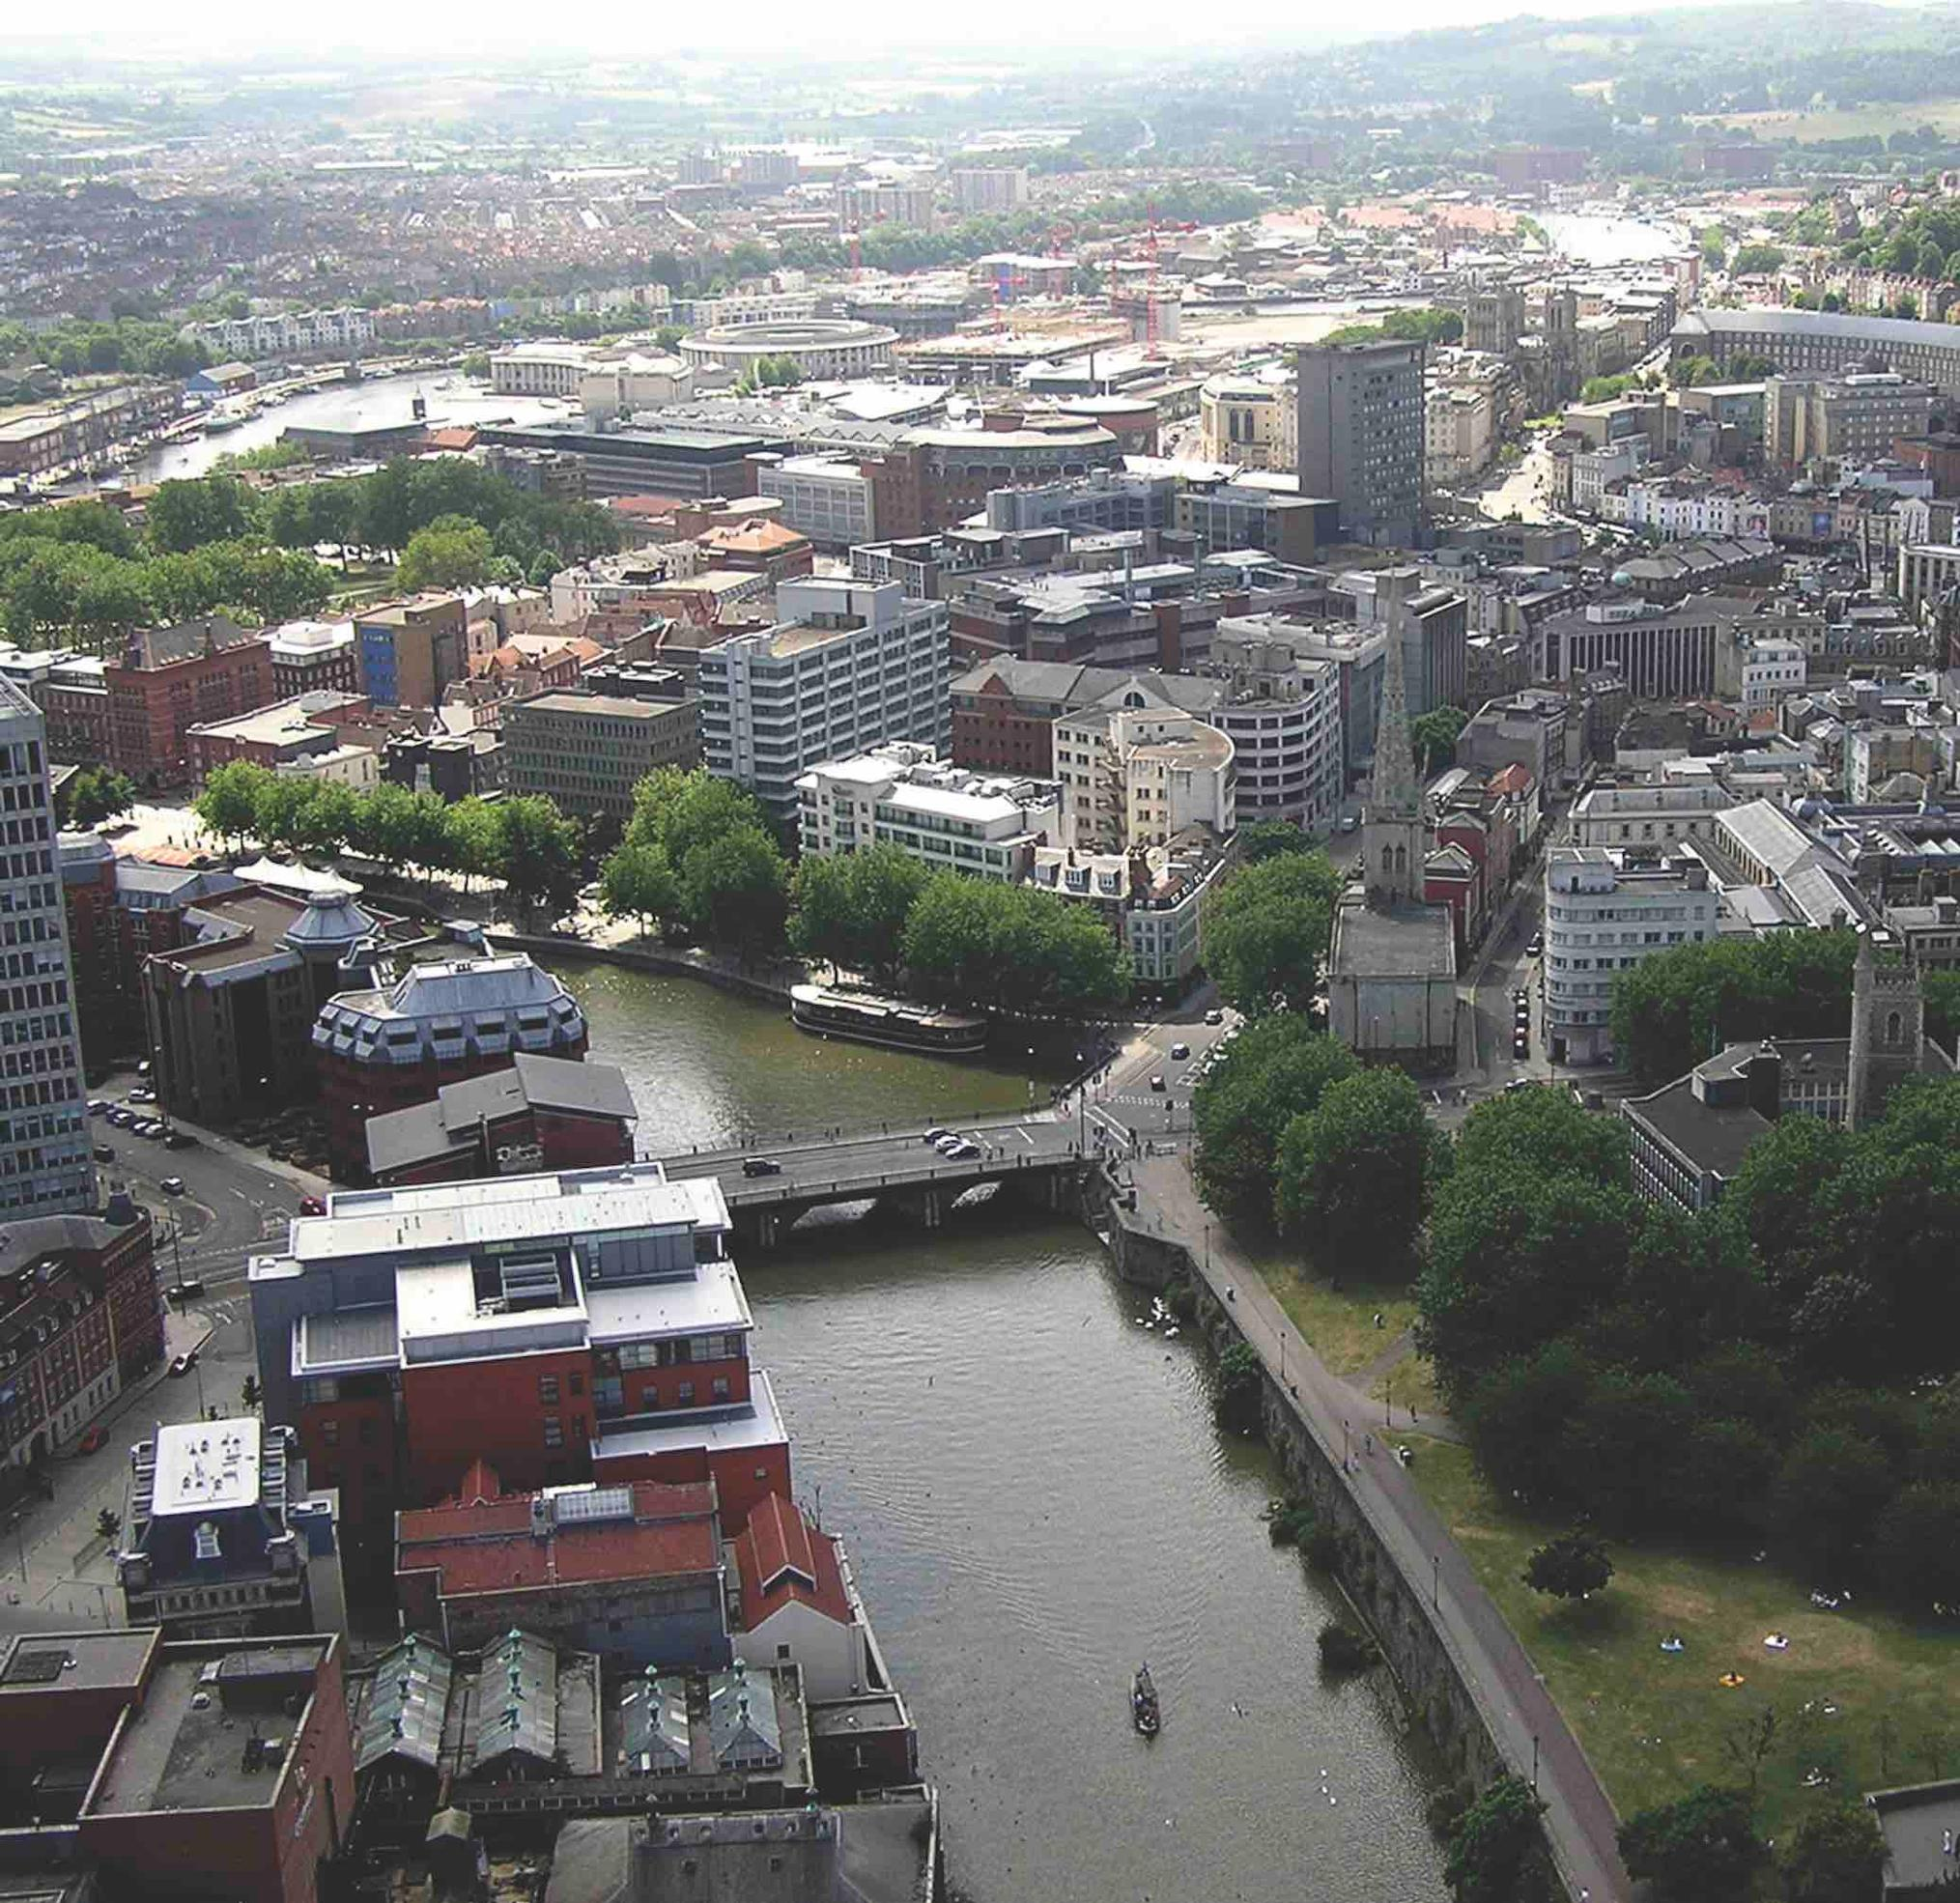 Bristol: no traffic growth